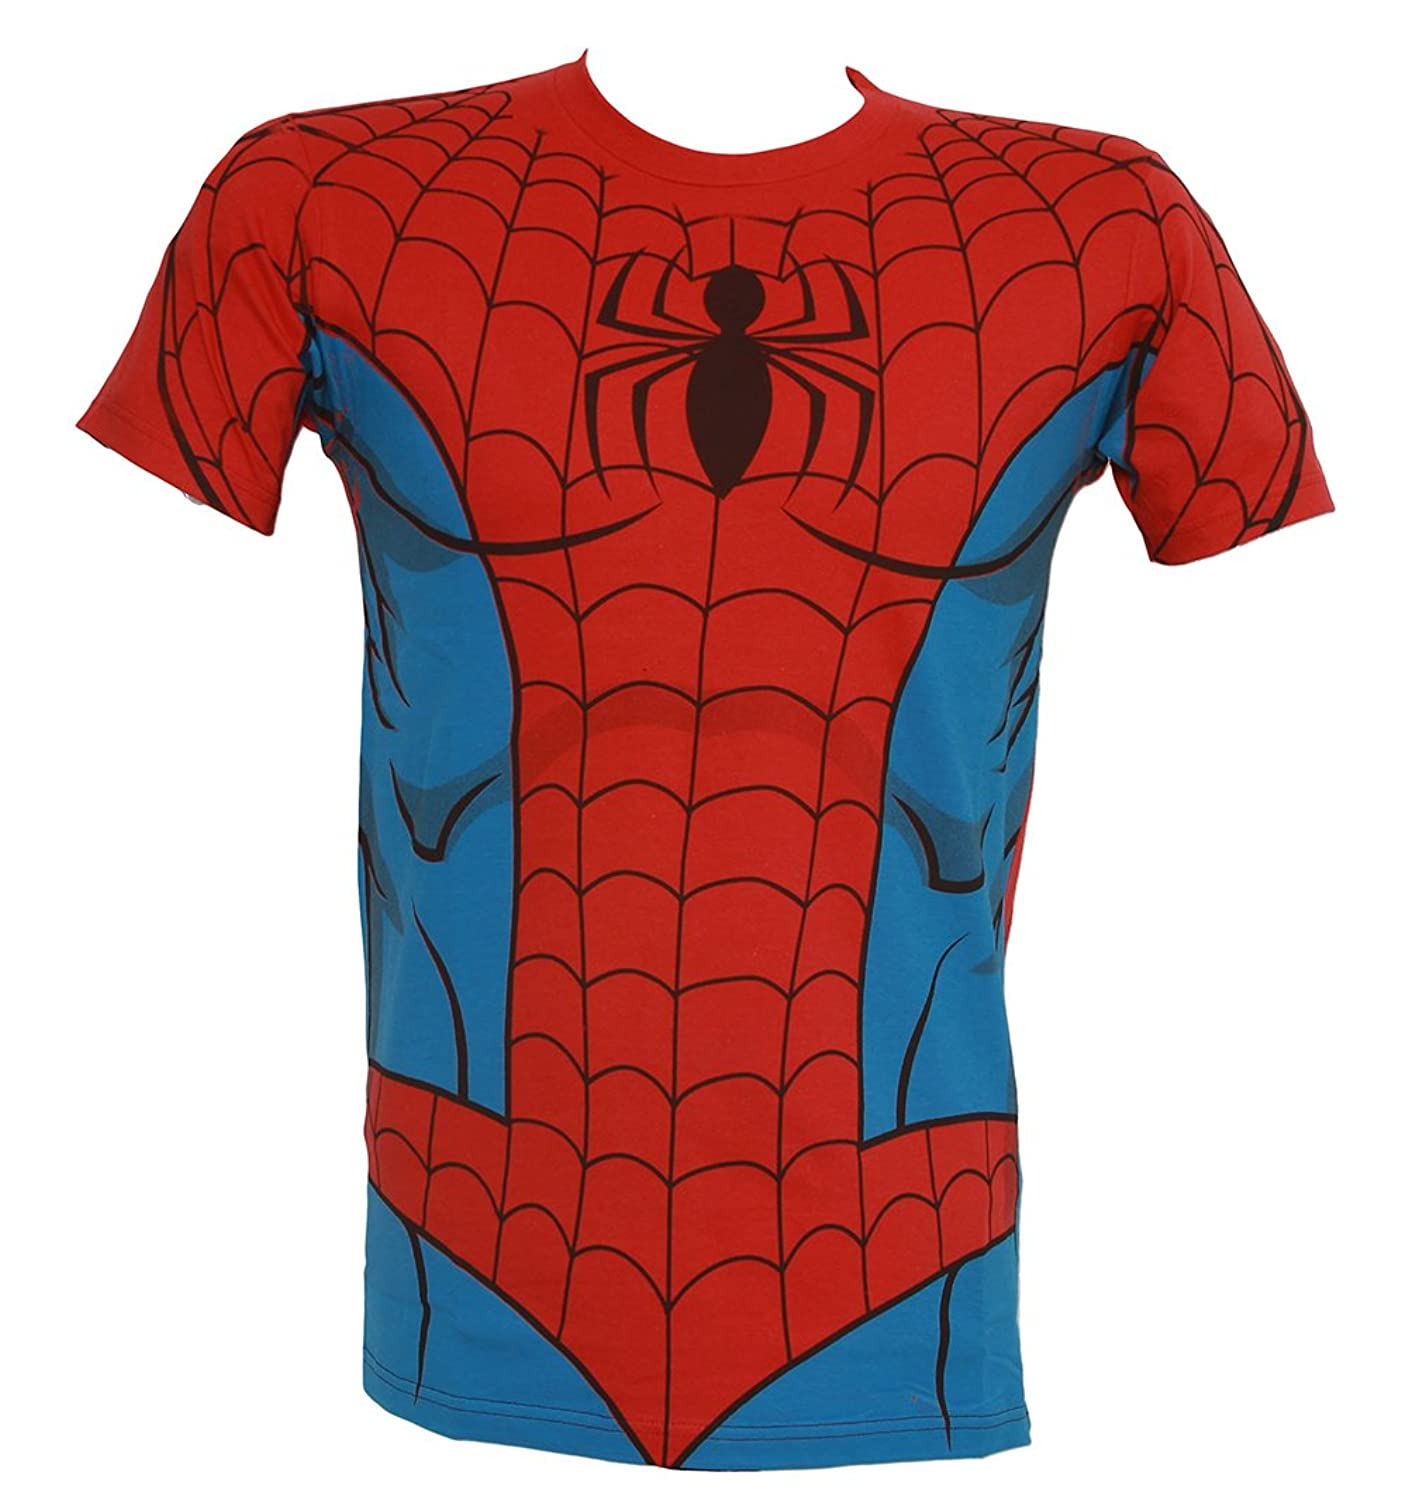 t Shirt Costumes Men Men's Costume T-shirt